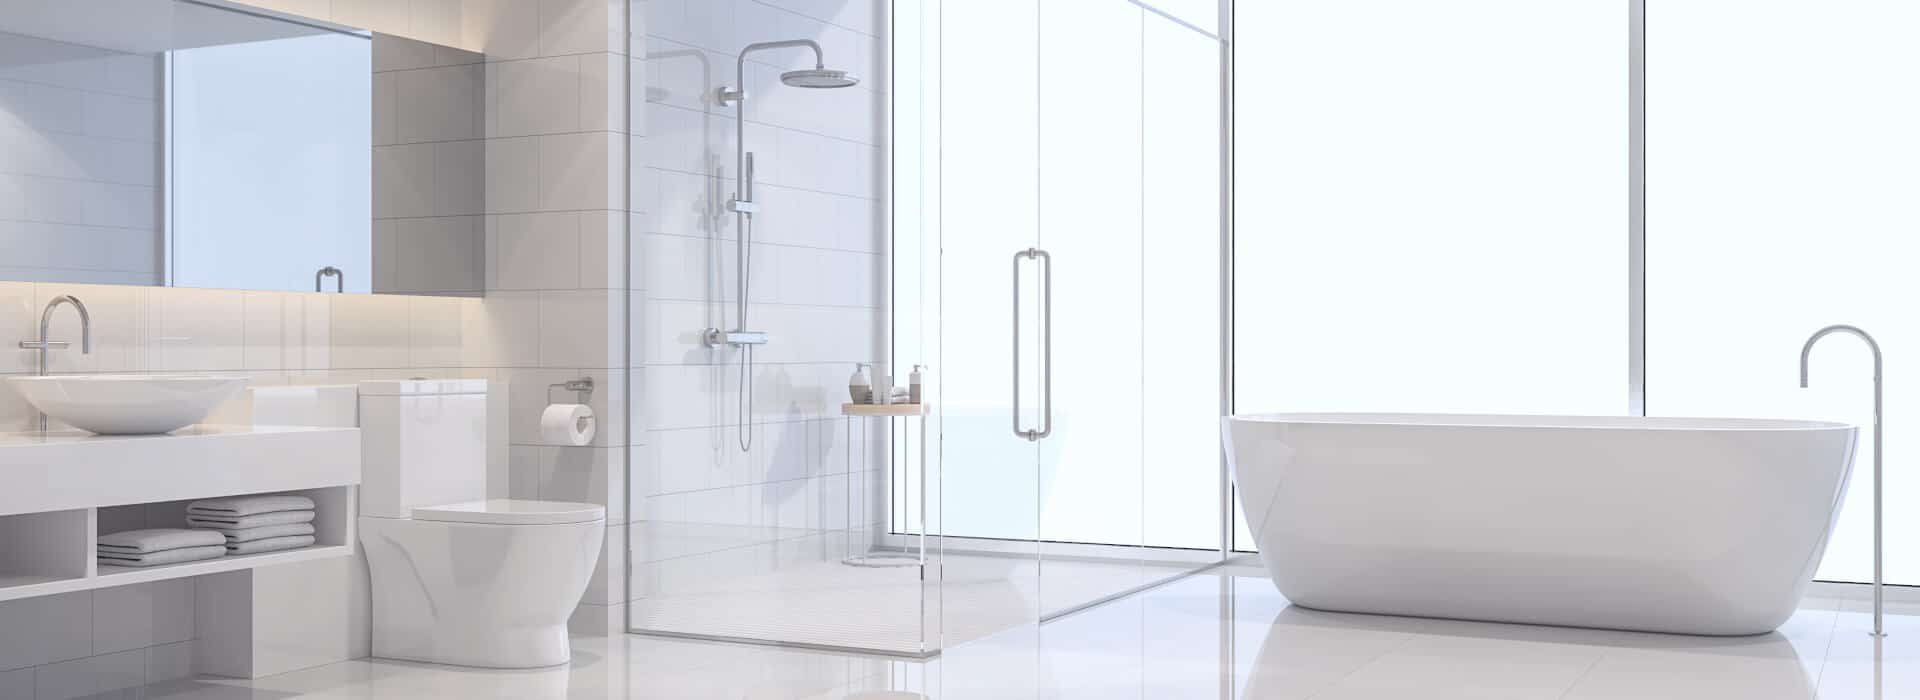 Deluxe Bathroom Design - Sunshine Coast Plumbing and Gas Experts